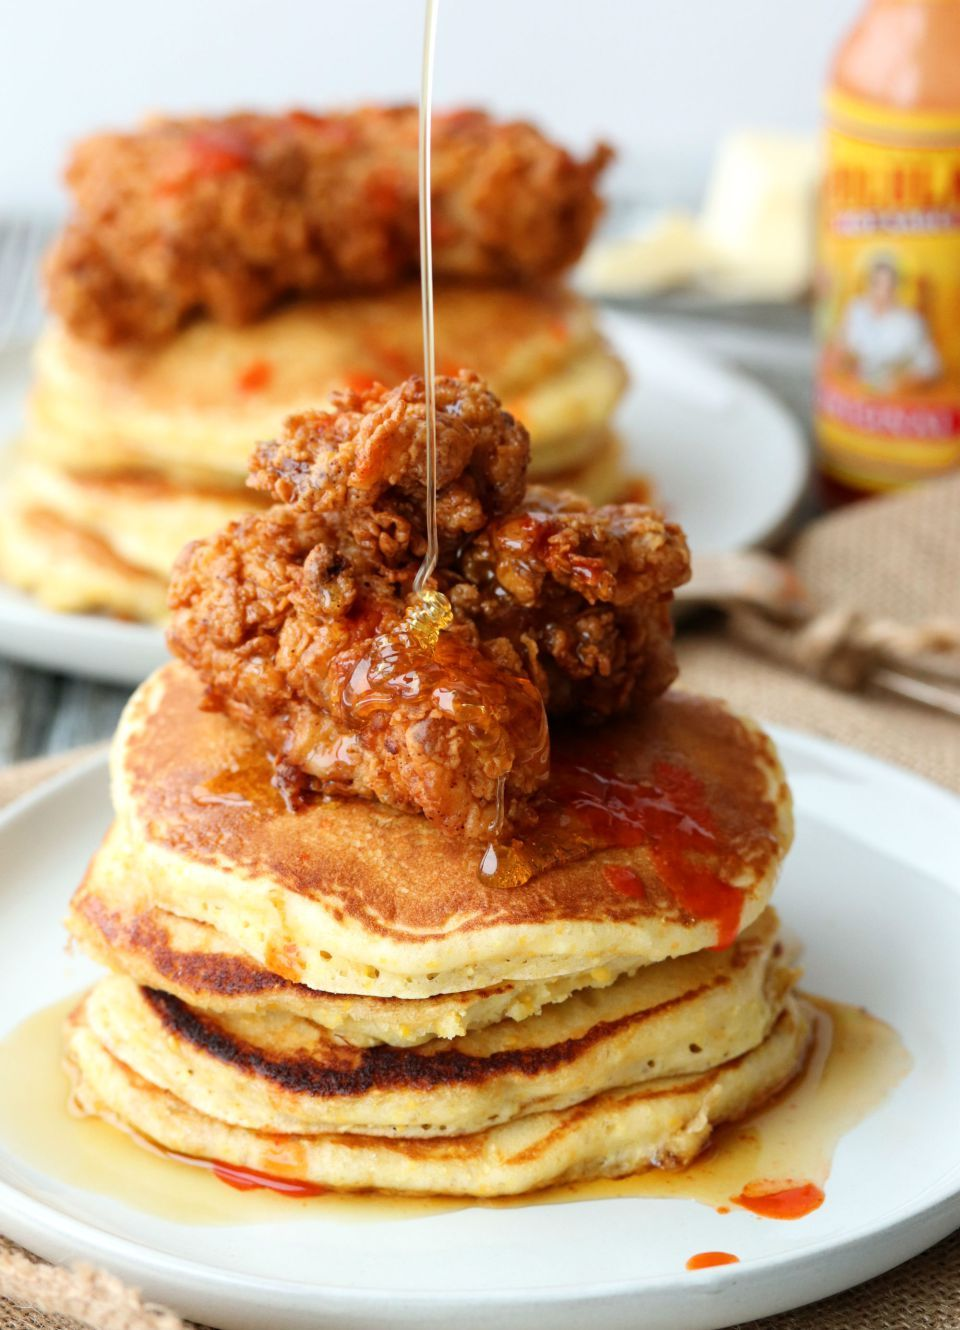 Buttermilk Fried Chicken And Cornmeal Pancakes Fried Chicken And Waffles Buttermilk Fried Chicken Cornmeal Fried Chicken